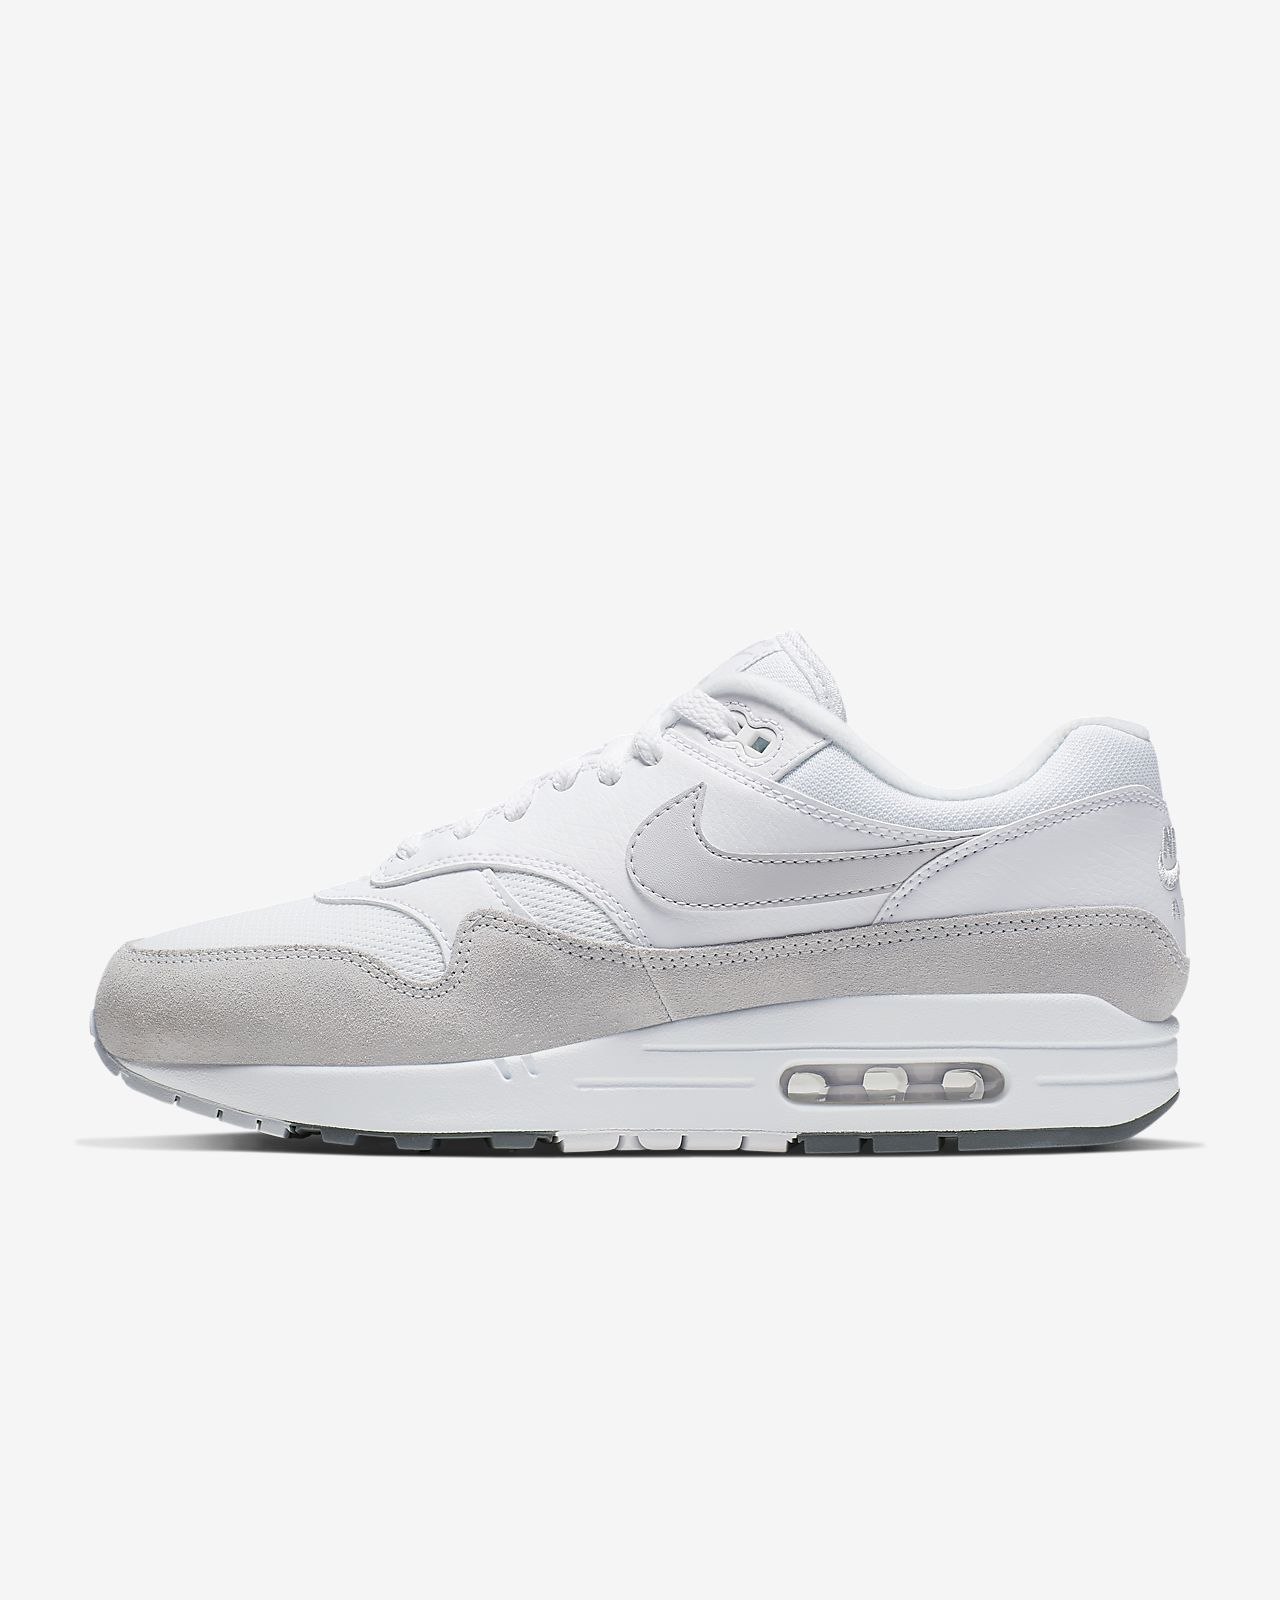 8530da7df0b7 Nike Air Max 1 Men s Shoe. Nike.com